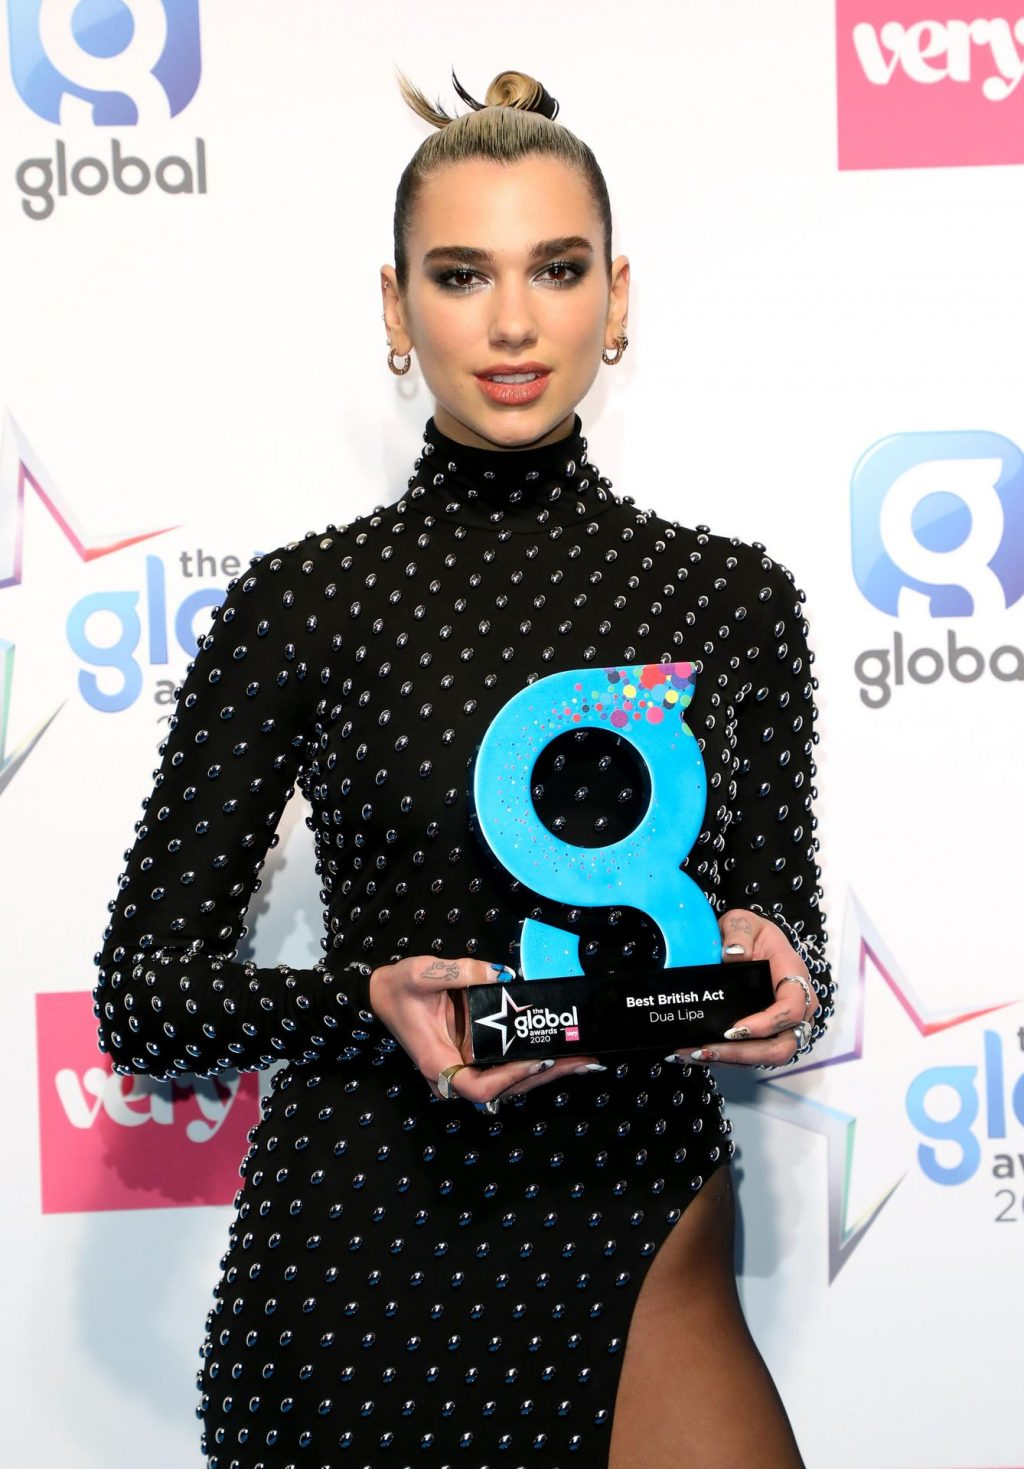 Dua Lipa Stuns at The Global Awards in London (70 Photos)